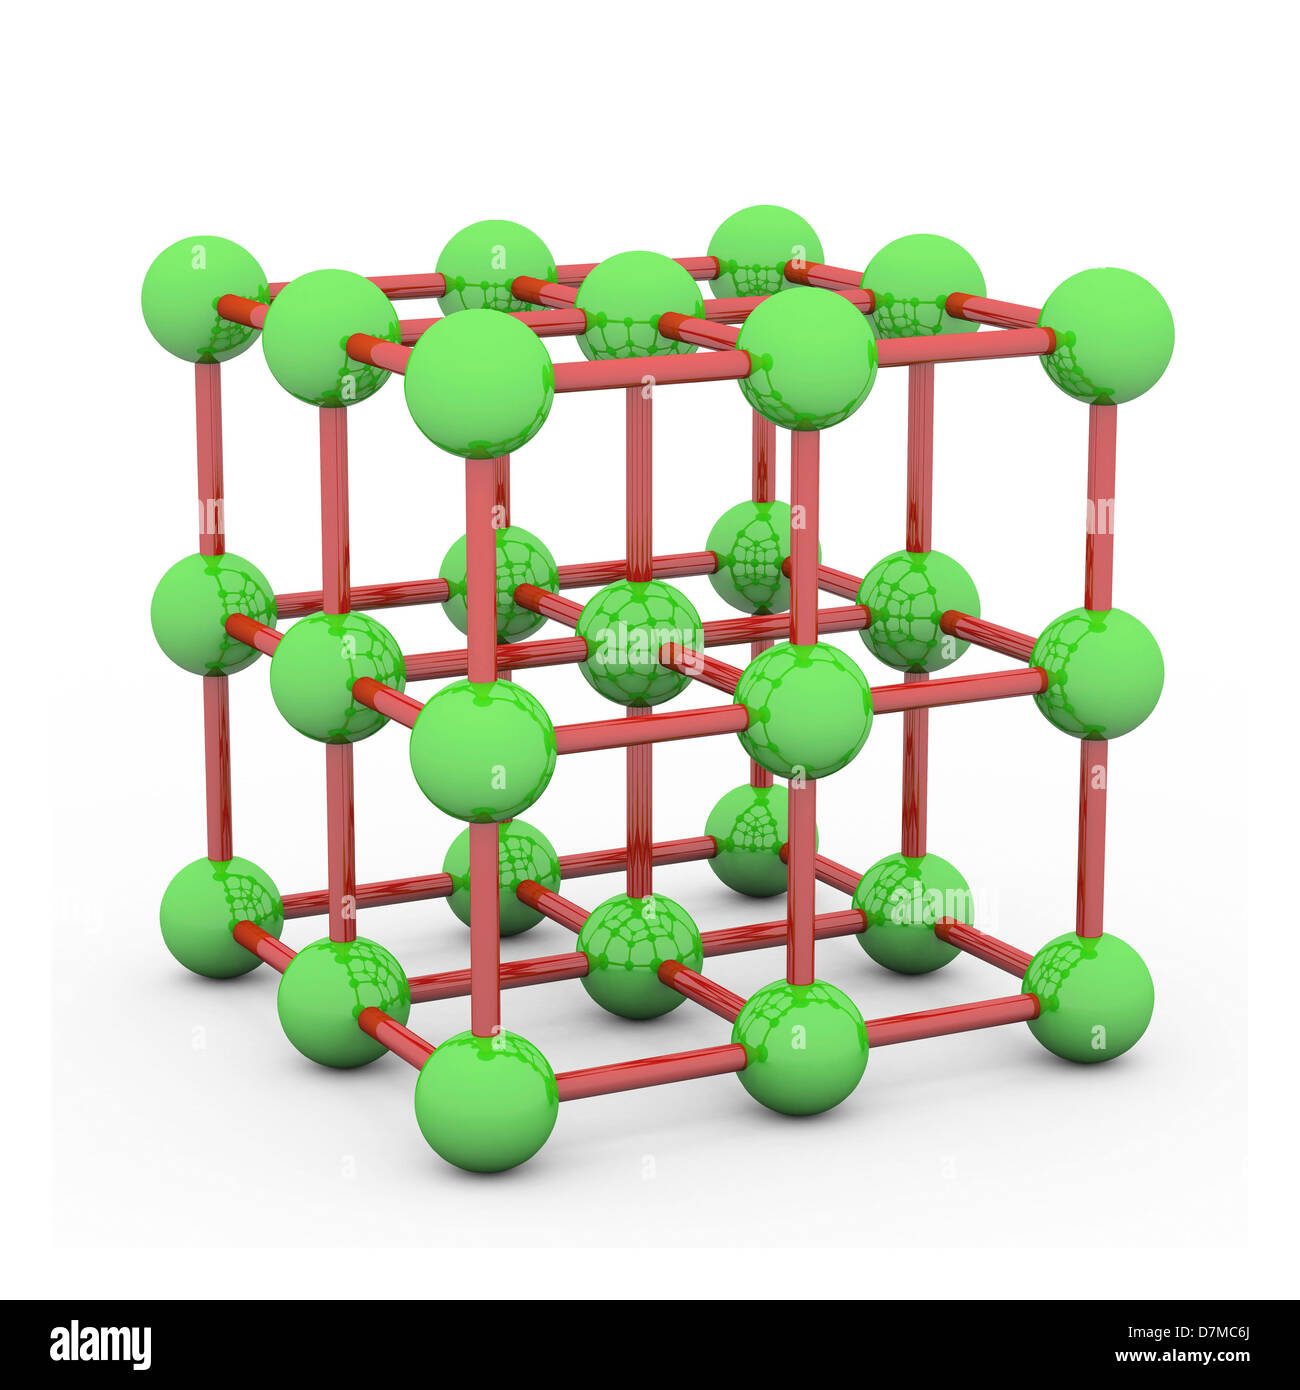 Space-centred cubic crystal structure - Stock Image